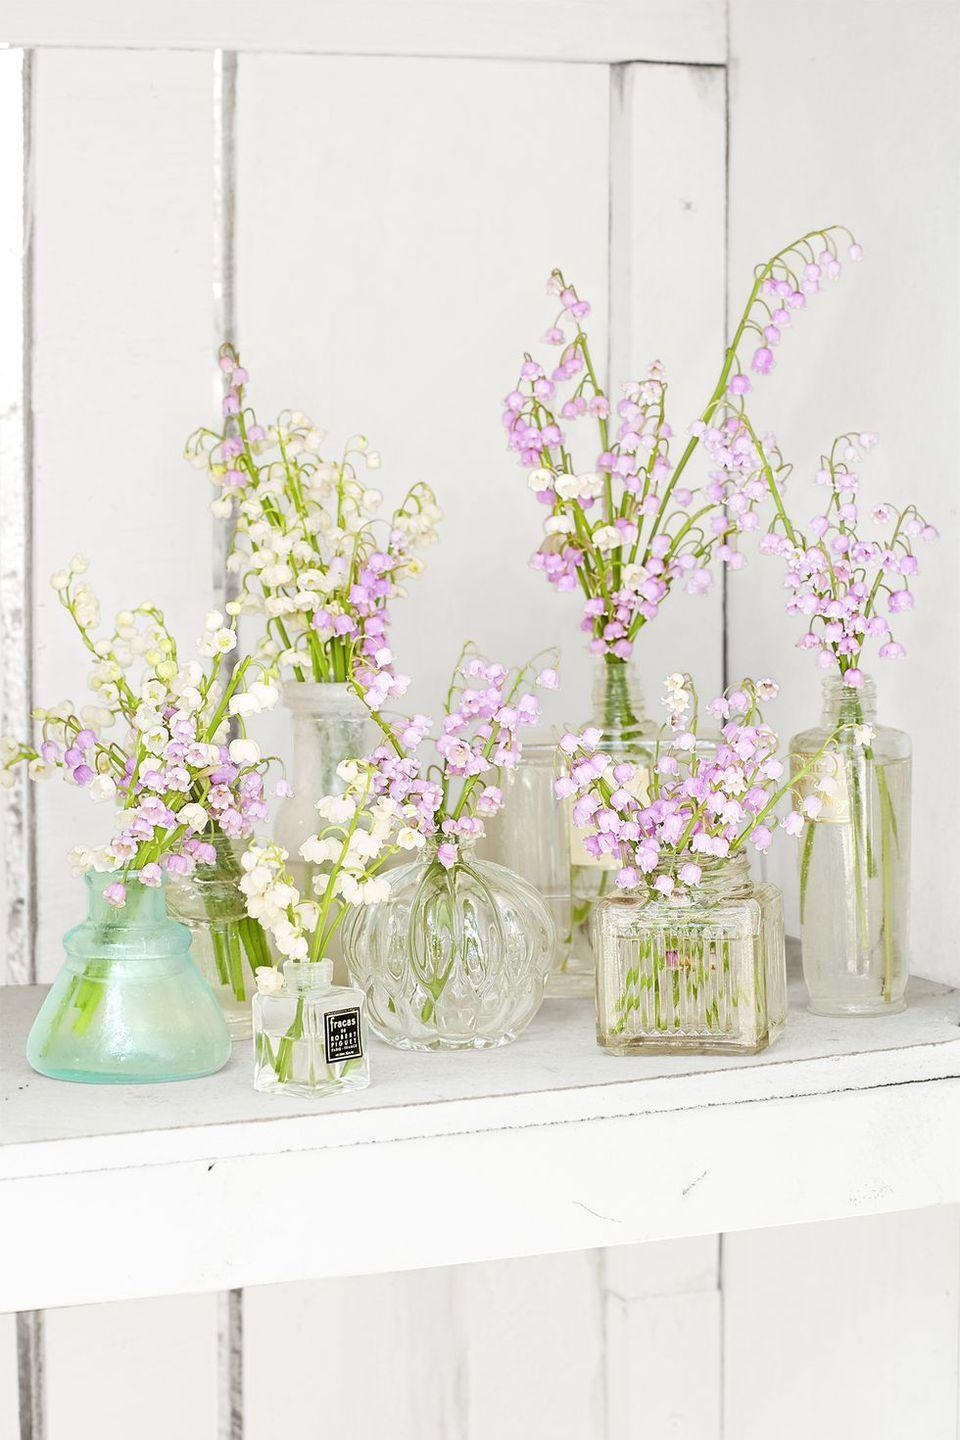 "<p>Don't throw out those empty perfume bottles sitting on your vanity! Lilies of the valley look beautiful arranged in these glass vessels, and they're perfect for Easter.</p><p><a class=""link rapid-noclick-resp"" href=""https://www.amazon.com/Vintage-Refillable-Perfume-Bottles-Wedding/dp/B01L6DCIQ8?tag=syn-yahoo-20&ascsubtag=%5Bartid%7C10050.g.1652%5Bsrc%7Cyahoo-us"" rel=""nofollow noopener"" target=""_blank"" data-ylk=""slk:SHOP EMPTY PERFUME BOTTLES"">SHOP EMPTY PERFUME BOTTLES</a></p>"